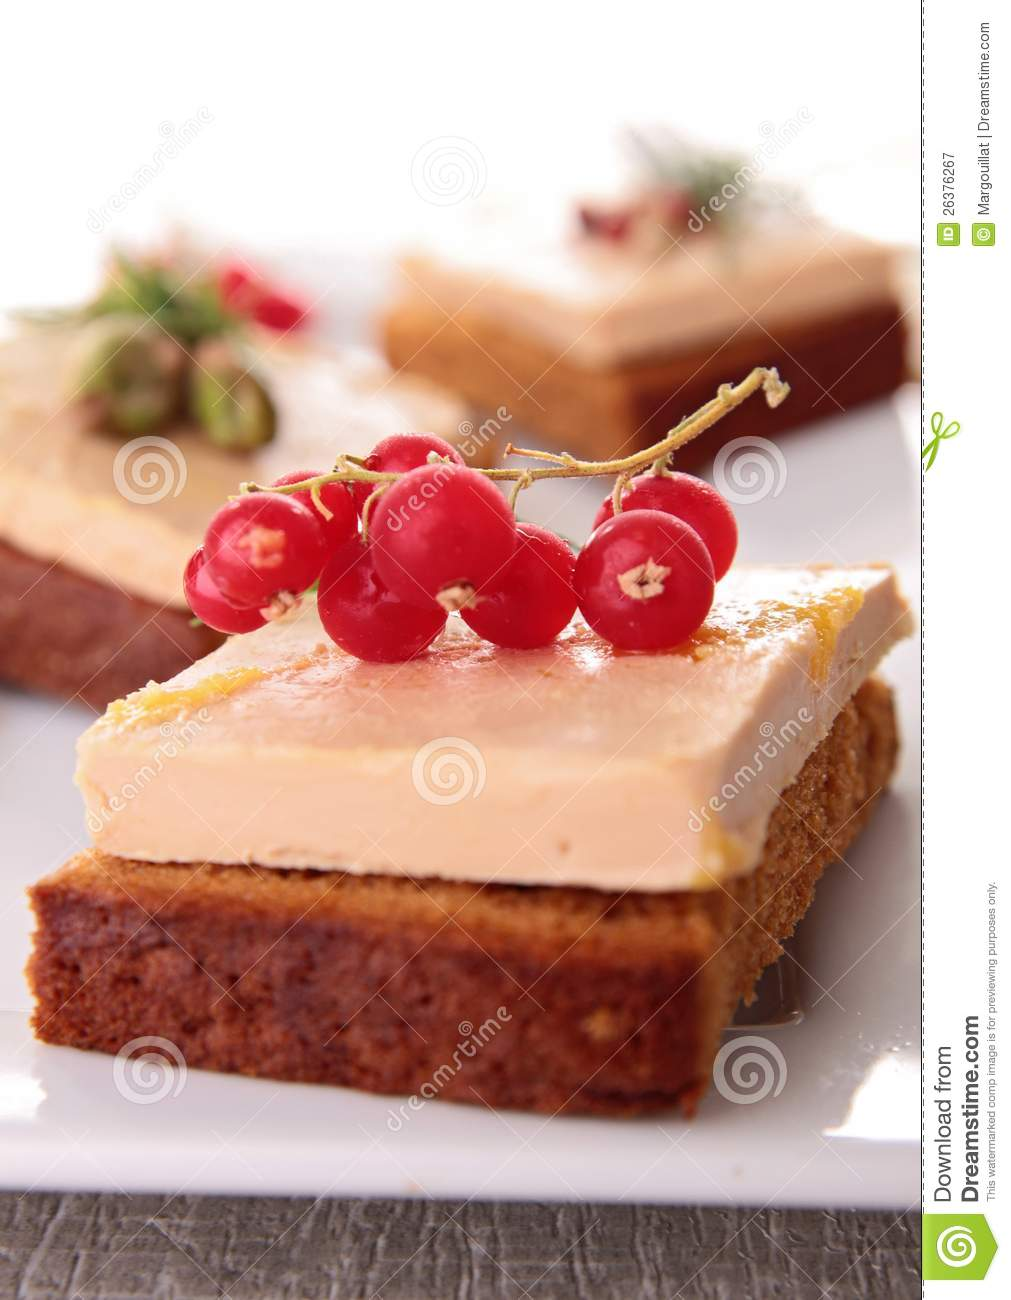 Appetizer canape royalty free stock photography image for What is a canape appetizer